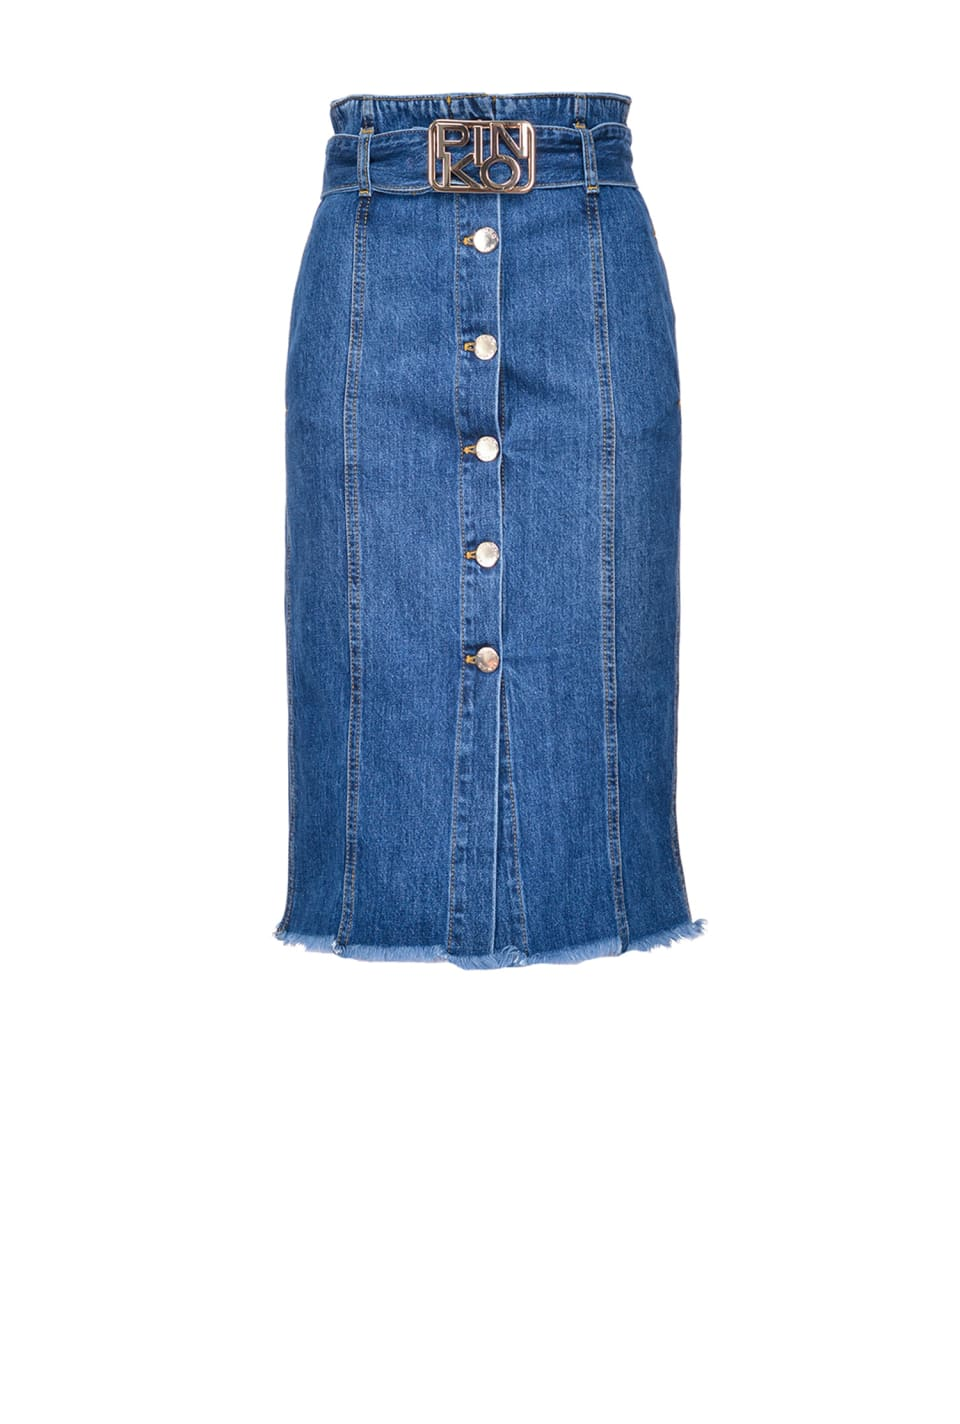 Midi-length vintage denim skirt - Pinko